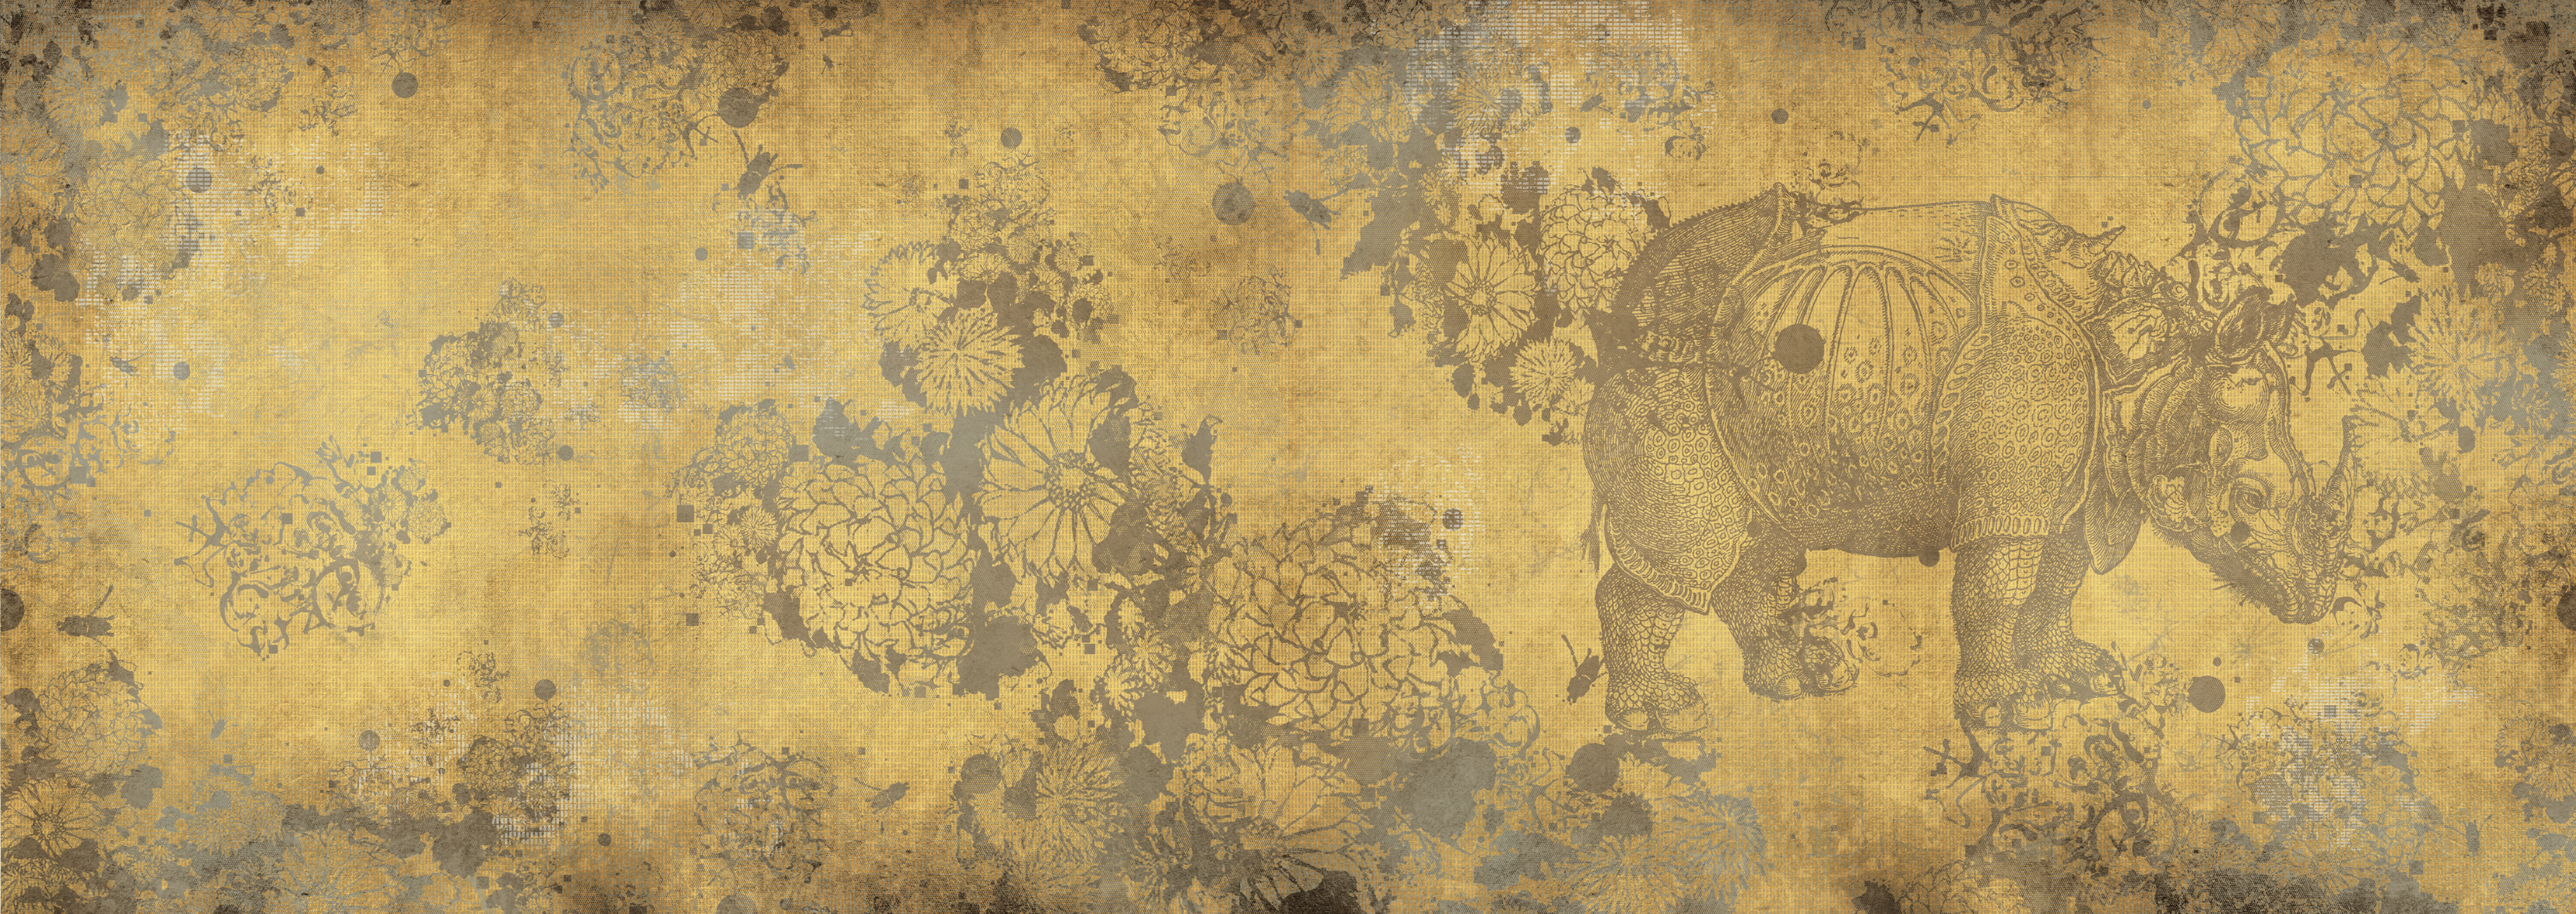 Papel pintado wunderkammer by wall dec dise o lorenzo de for Papel pintado ka internacional